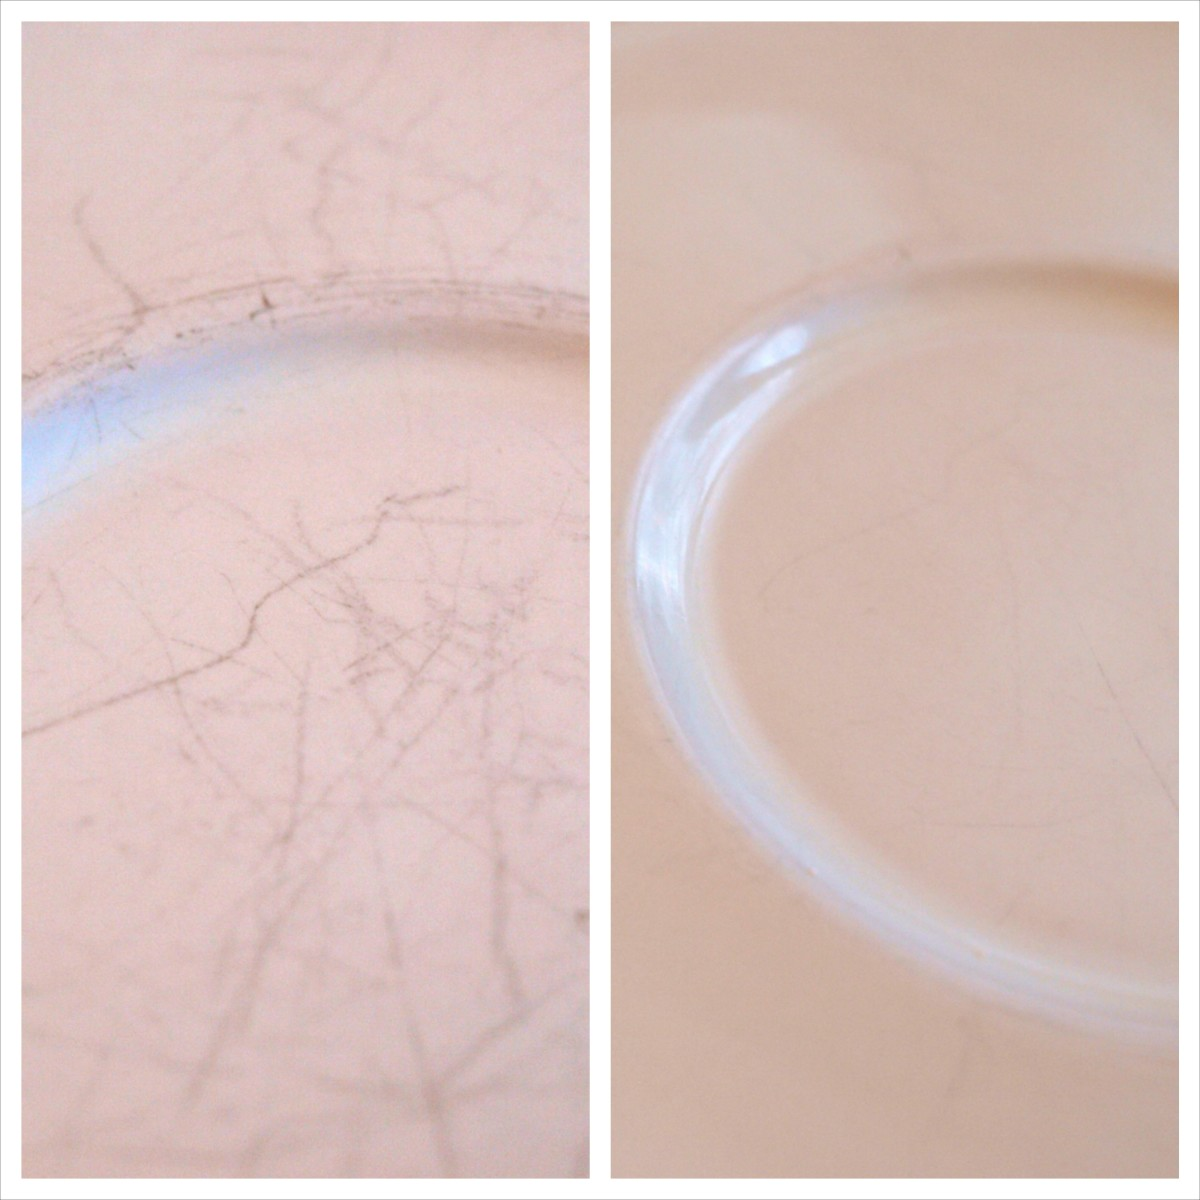 Before and after using whitening toothpaste to remove scuff marks from dishes that had not been used as much (like the saucers).